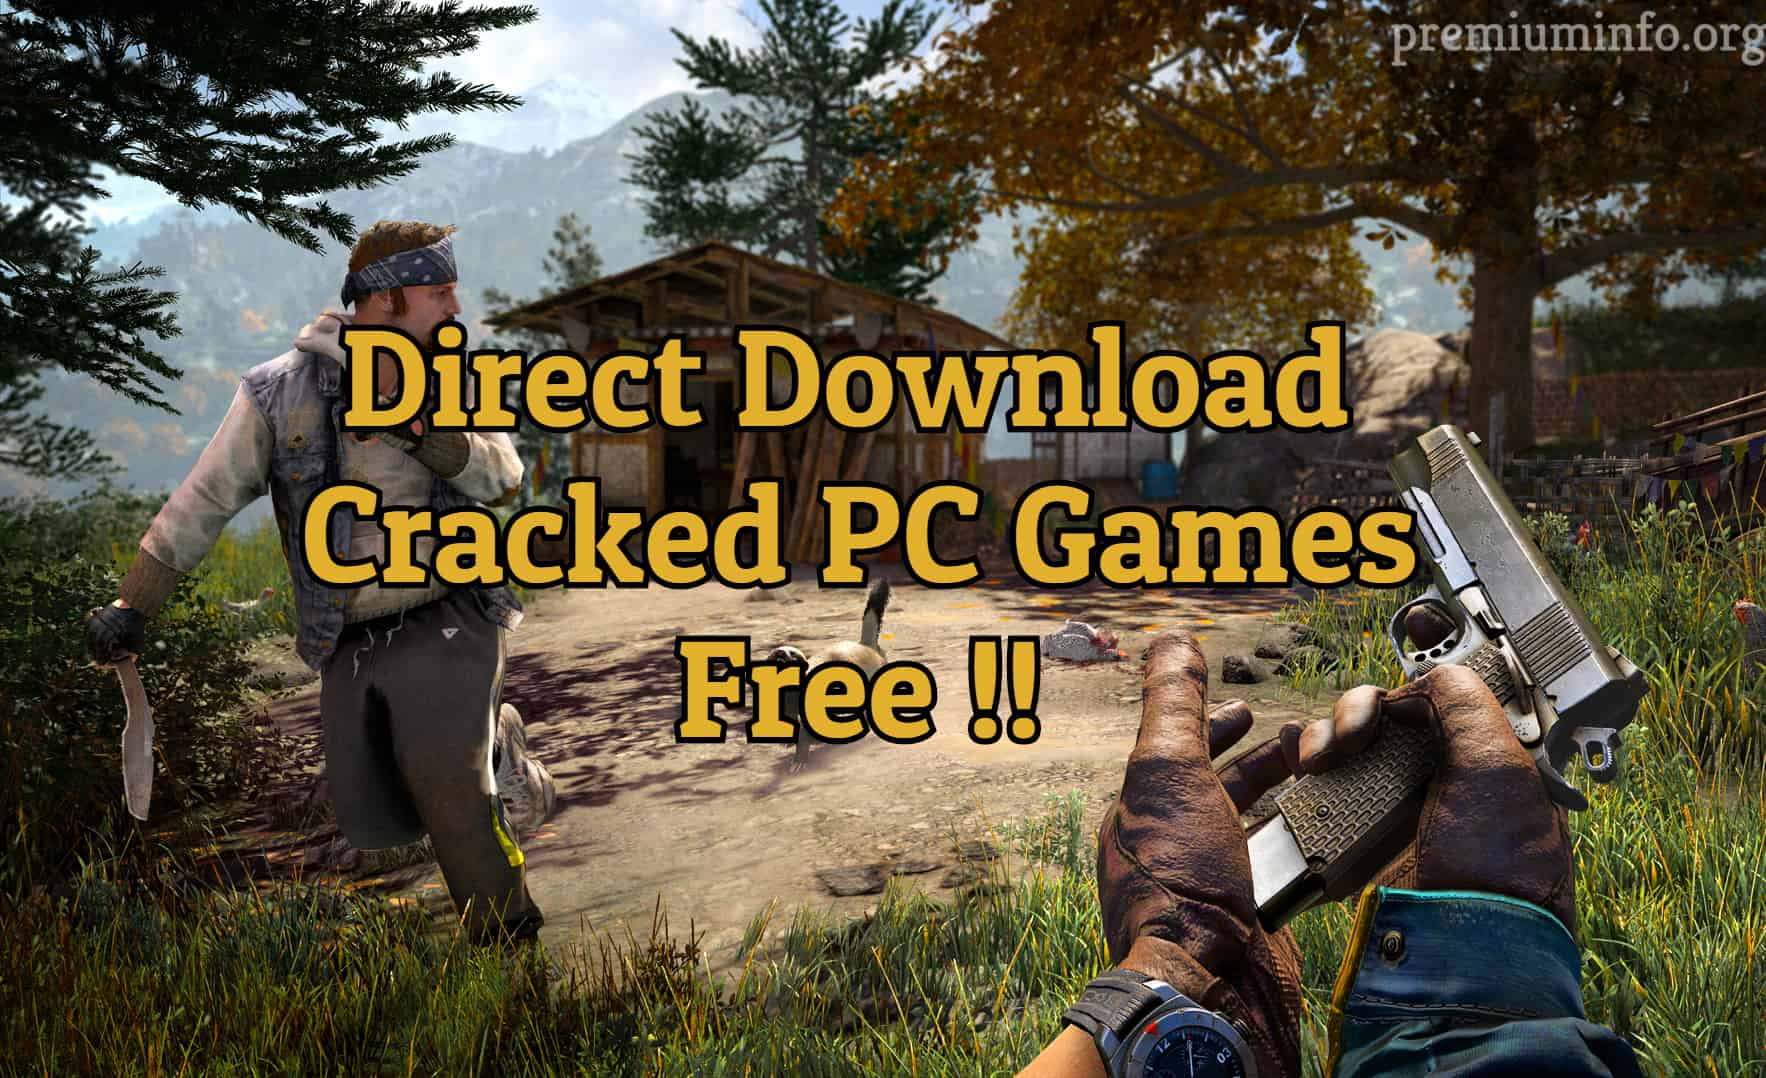 Best Sites To Download Cracked Pc Games For Windows 7 8 8 1 10 Premiuminfo